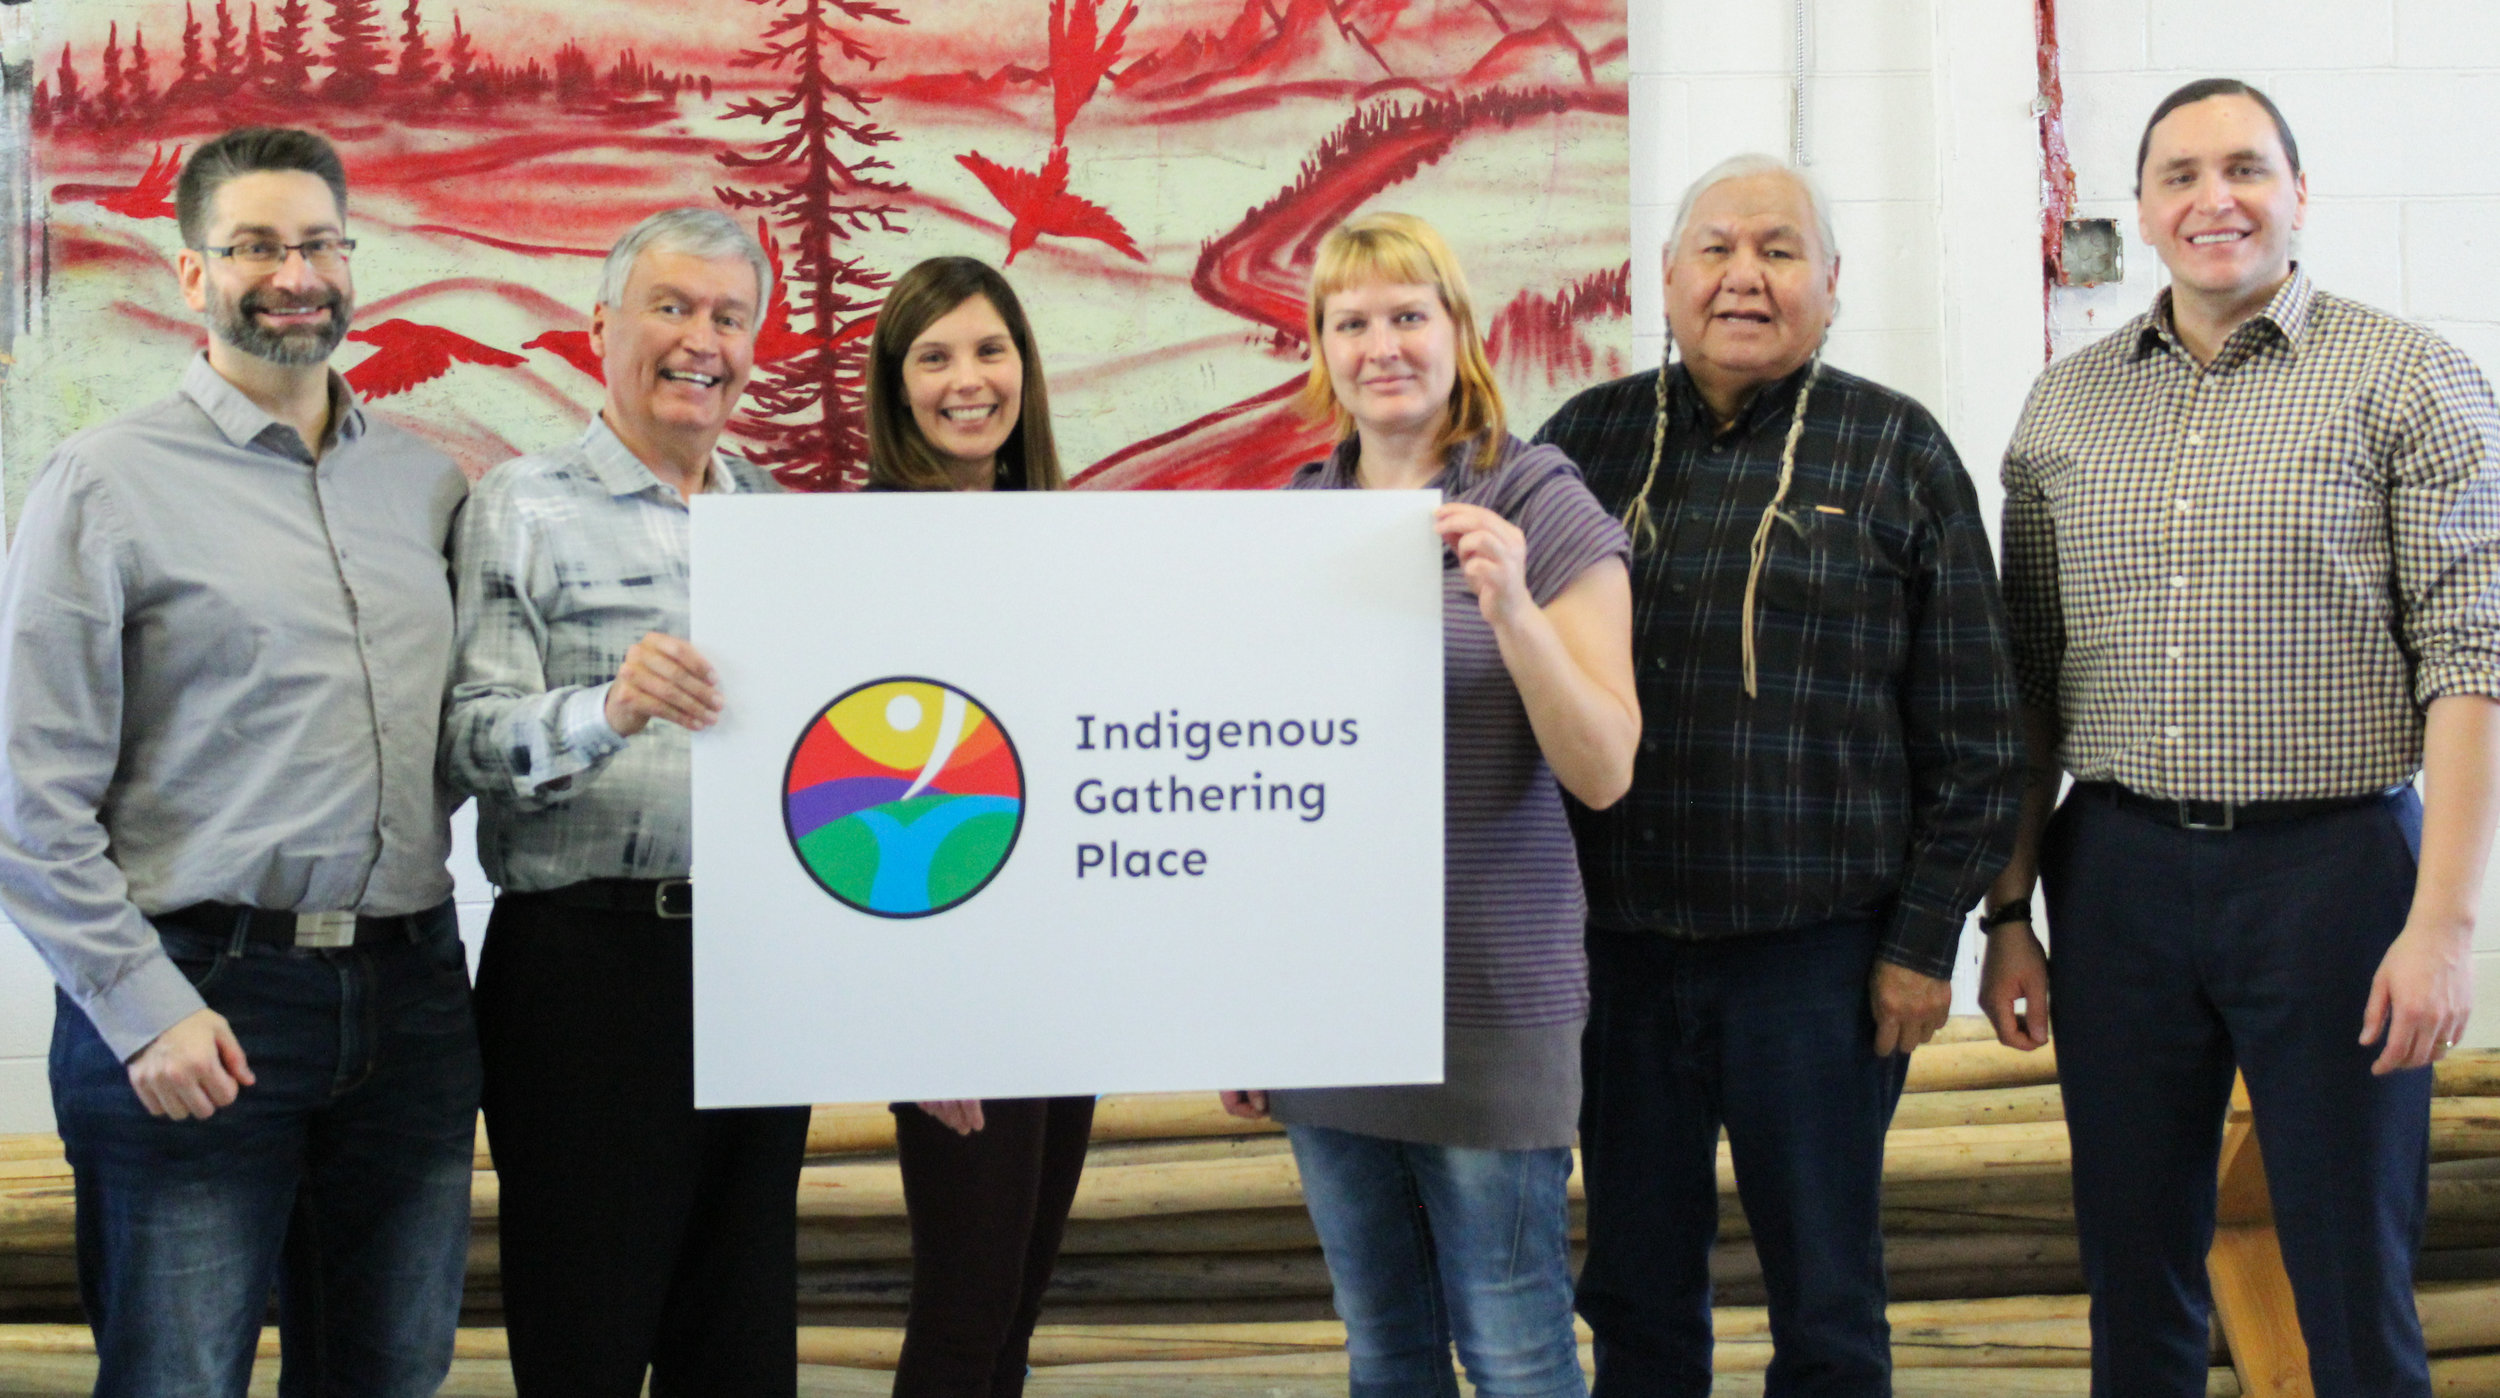 IGP Board members and Elder Advisor: (left to right) Mike Simeons, John Fischer, Lee Stevens, Janet Naclia, Elder Reg Crowshoe, Tyler Makinaw (regrets: Eve MacMillan)